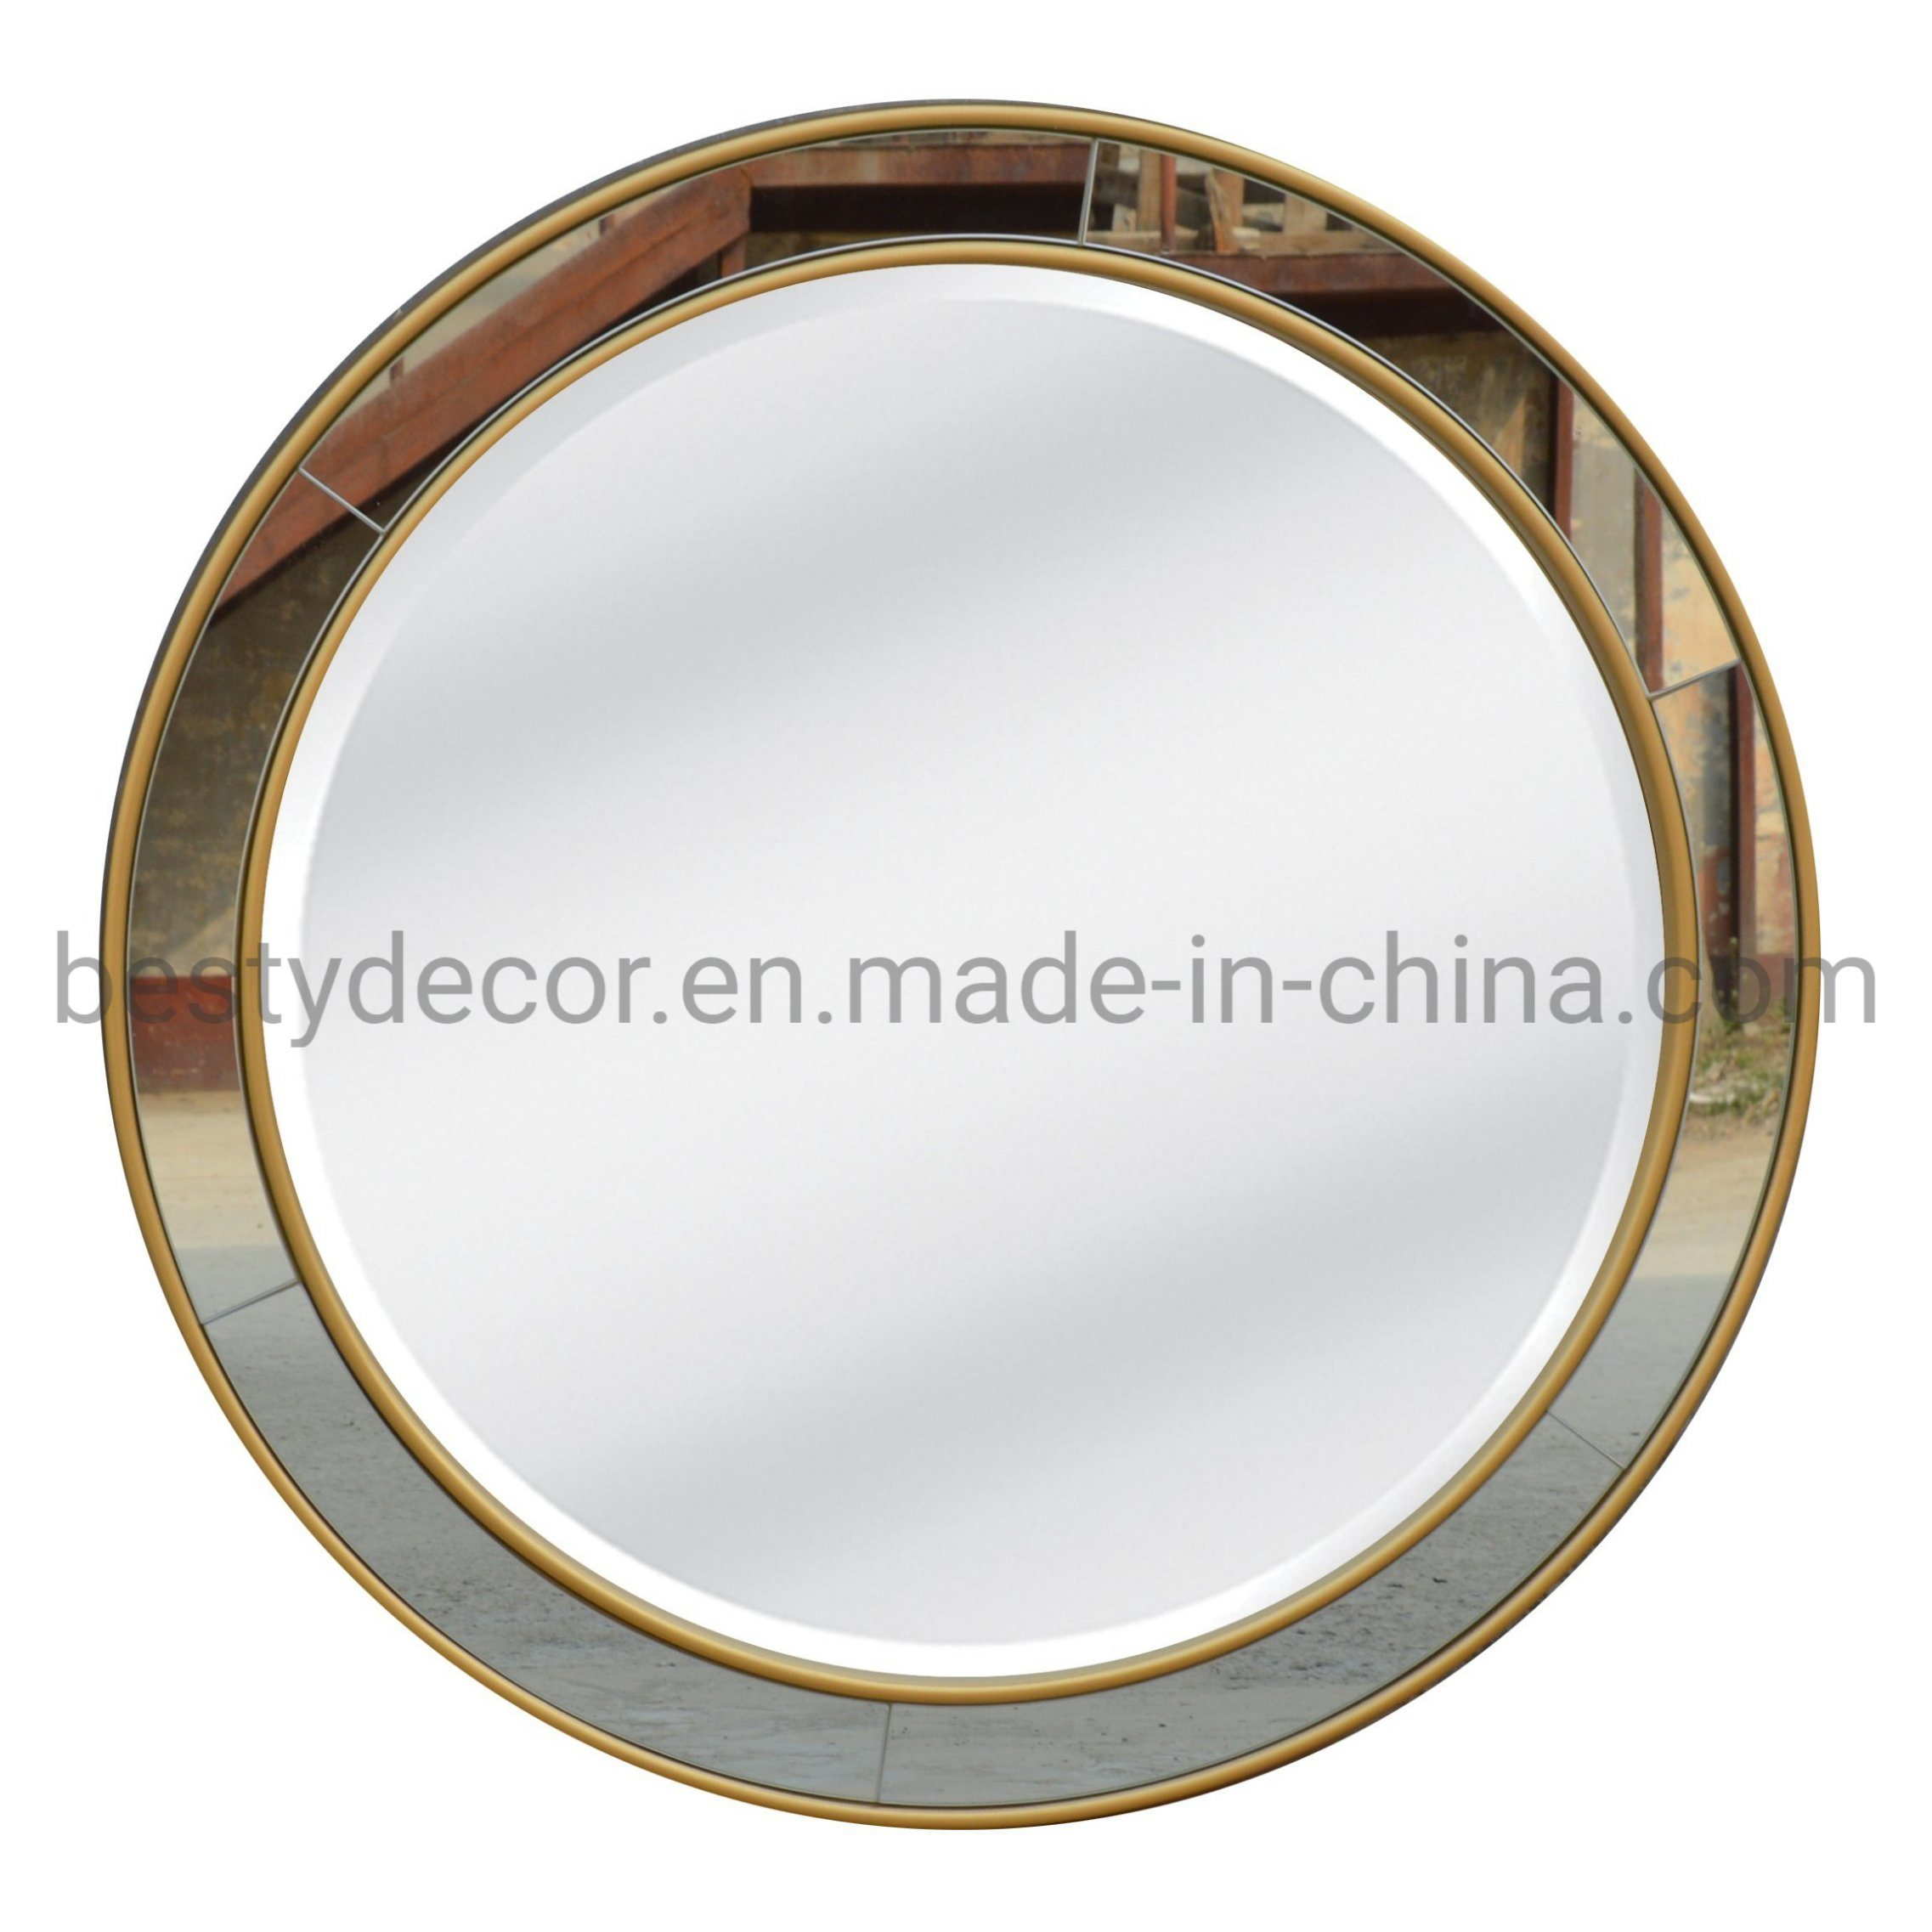 Hot Item Round Circular Home Decorative Hanging Framed Mirror